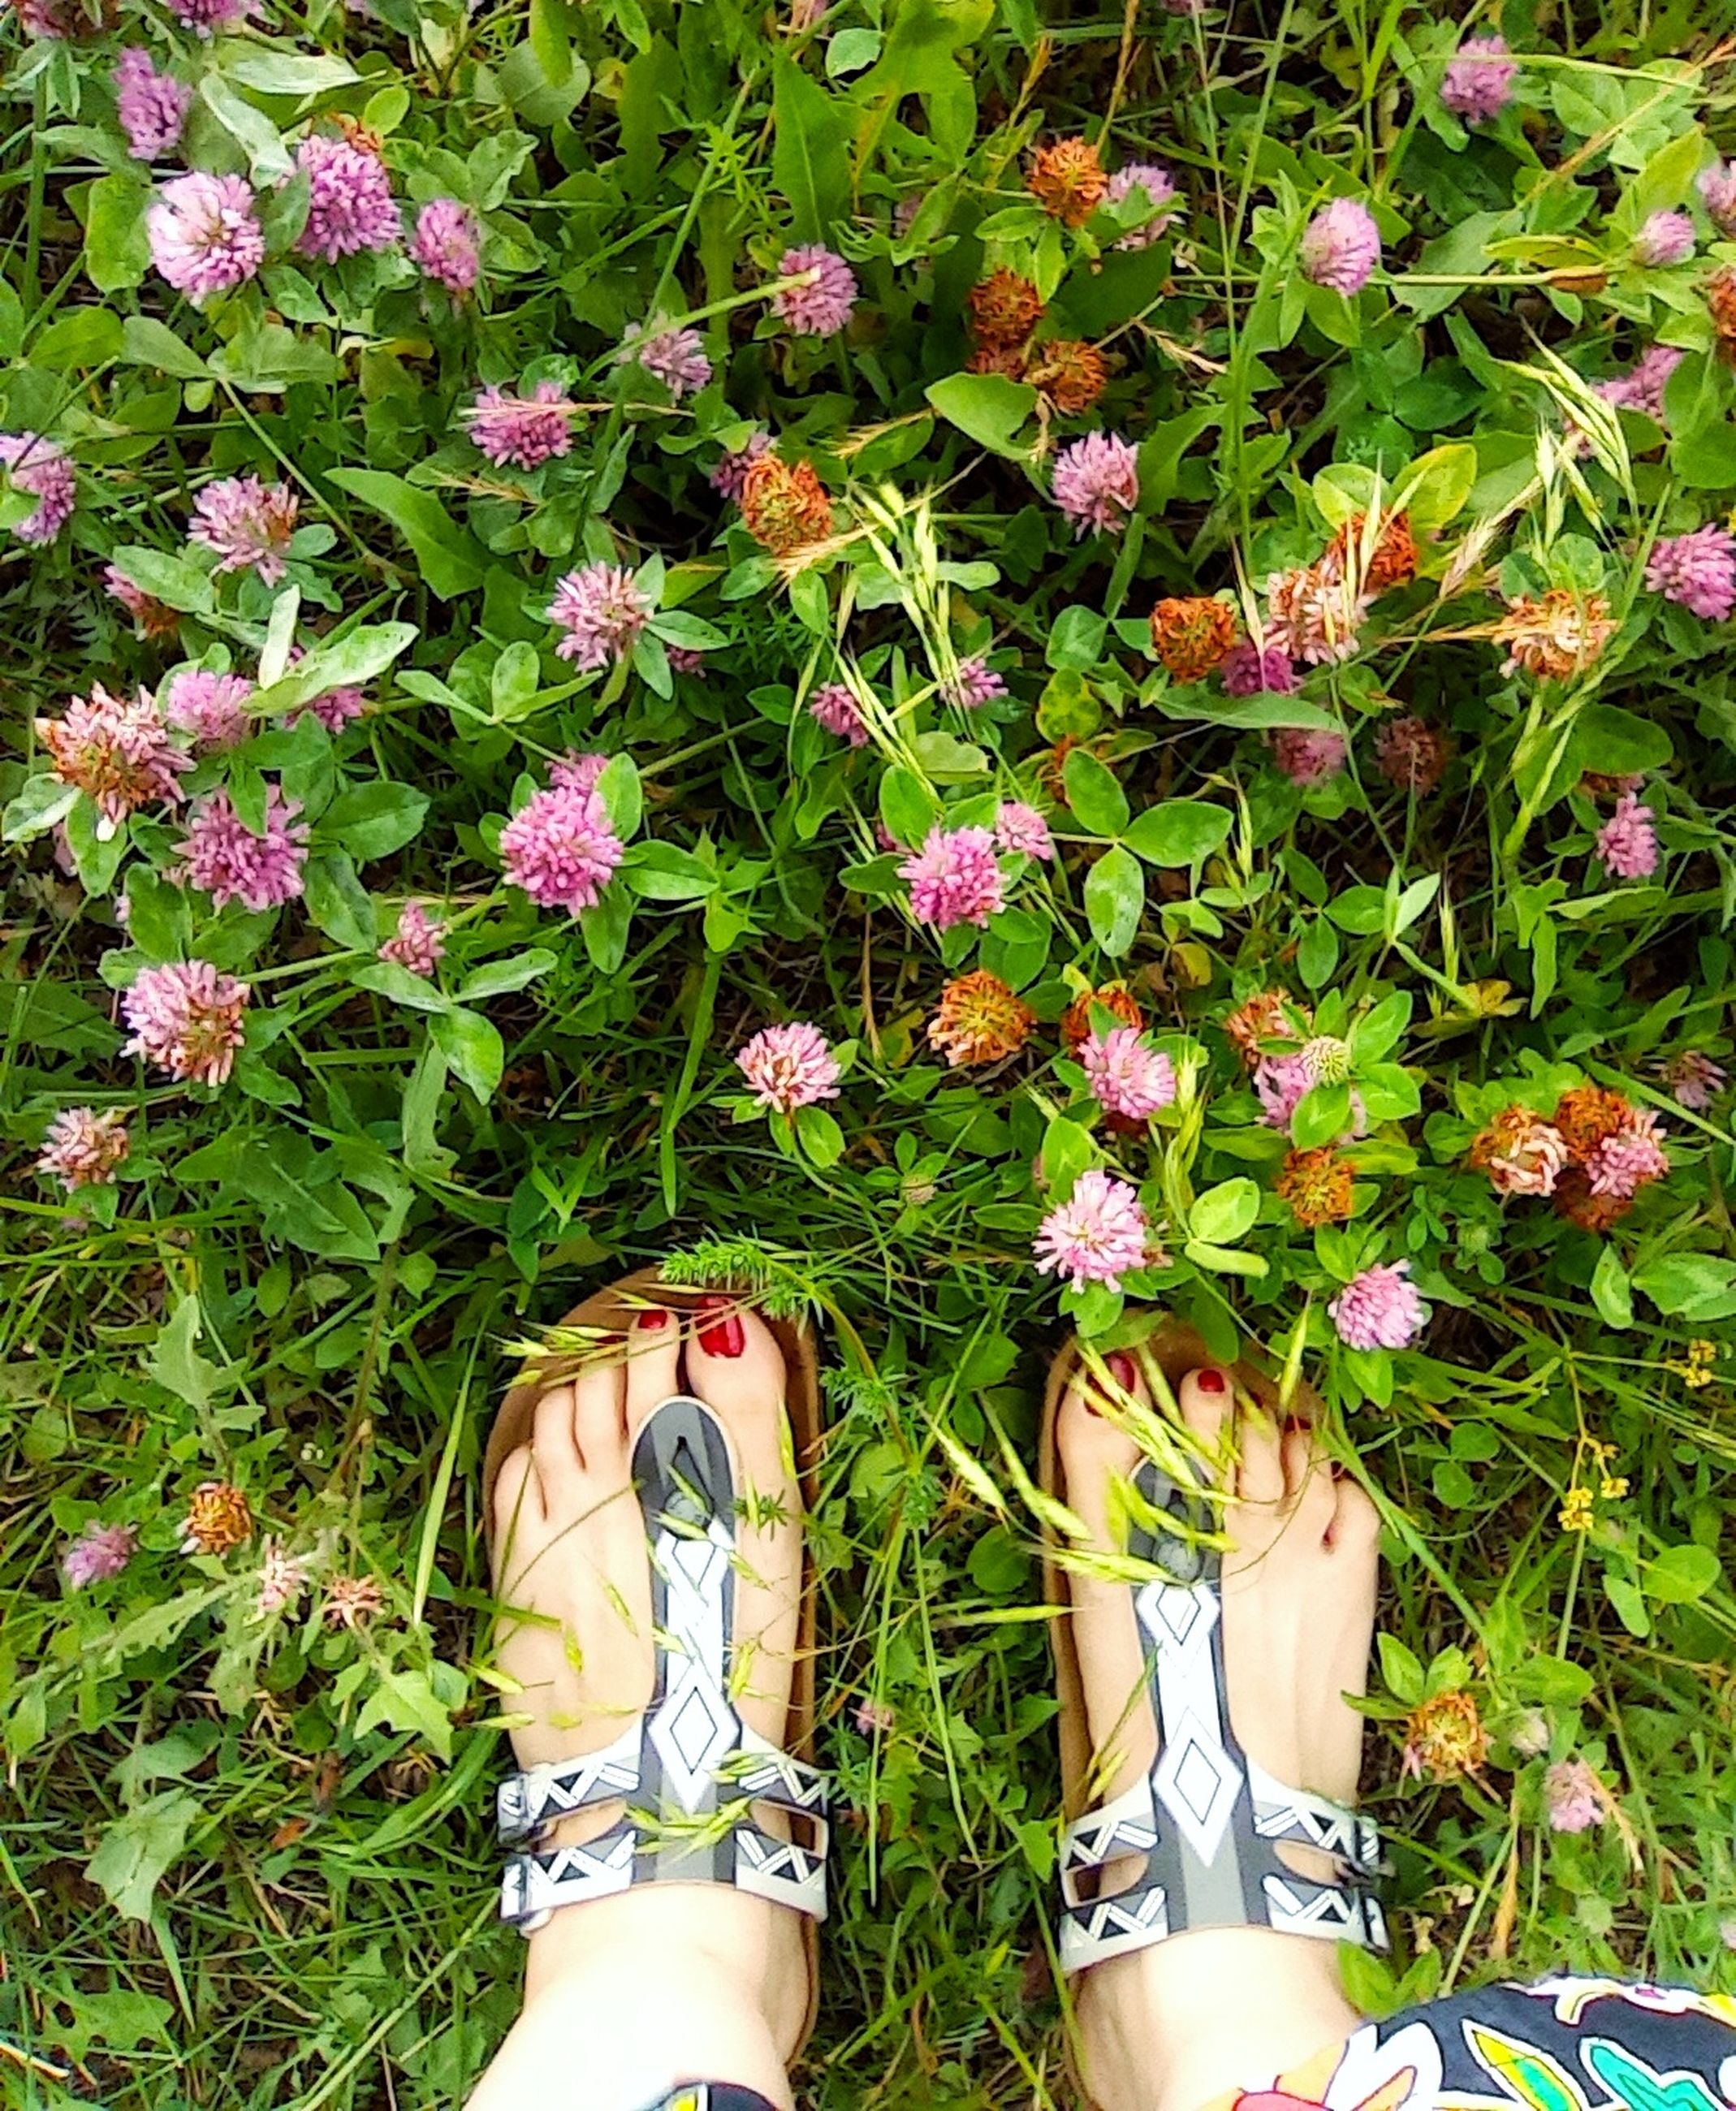 plant, human leg, low section, personal perspective, one person, flower, shoe, nature, high angle view, flowering plant, standing, day, lifestyles, grass, growth, green, beauty in nature, women, leisure activity, limb, freshness, directly above, human limb, outdoors, field, land, adult, human foot, lawn, sandal, garden, fragility